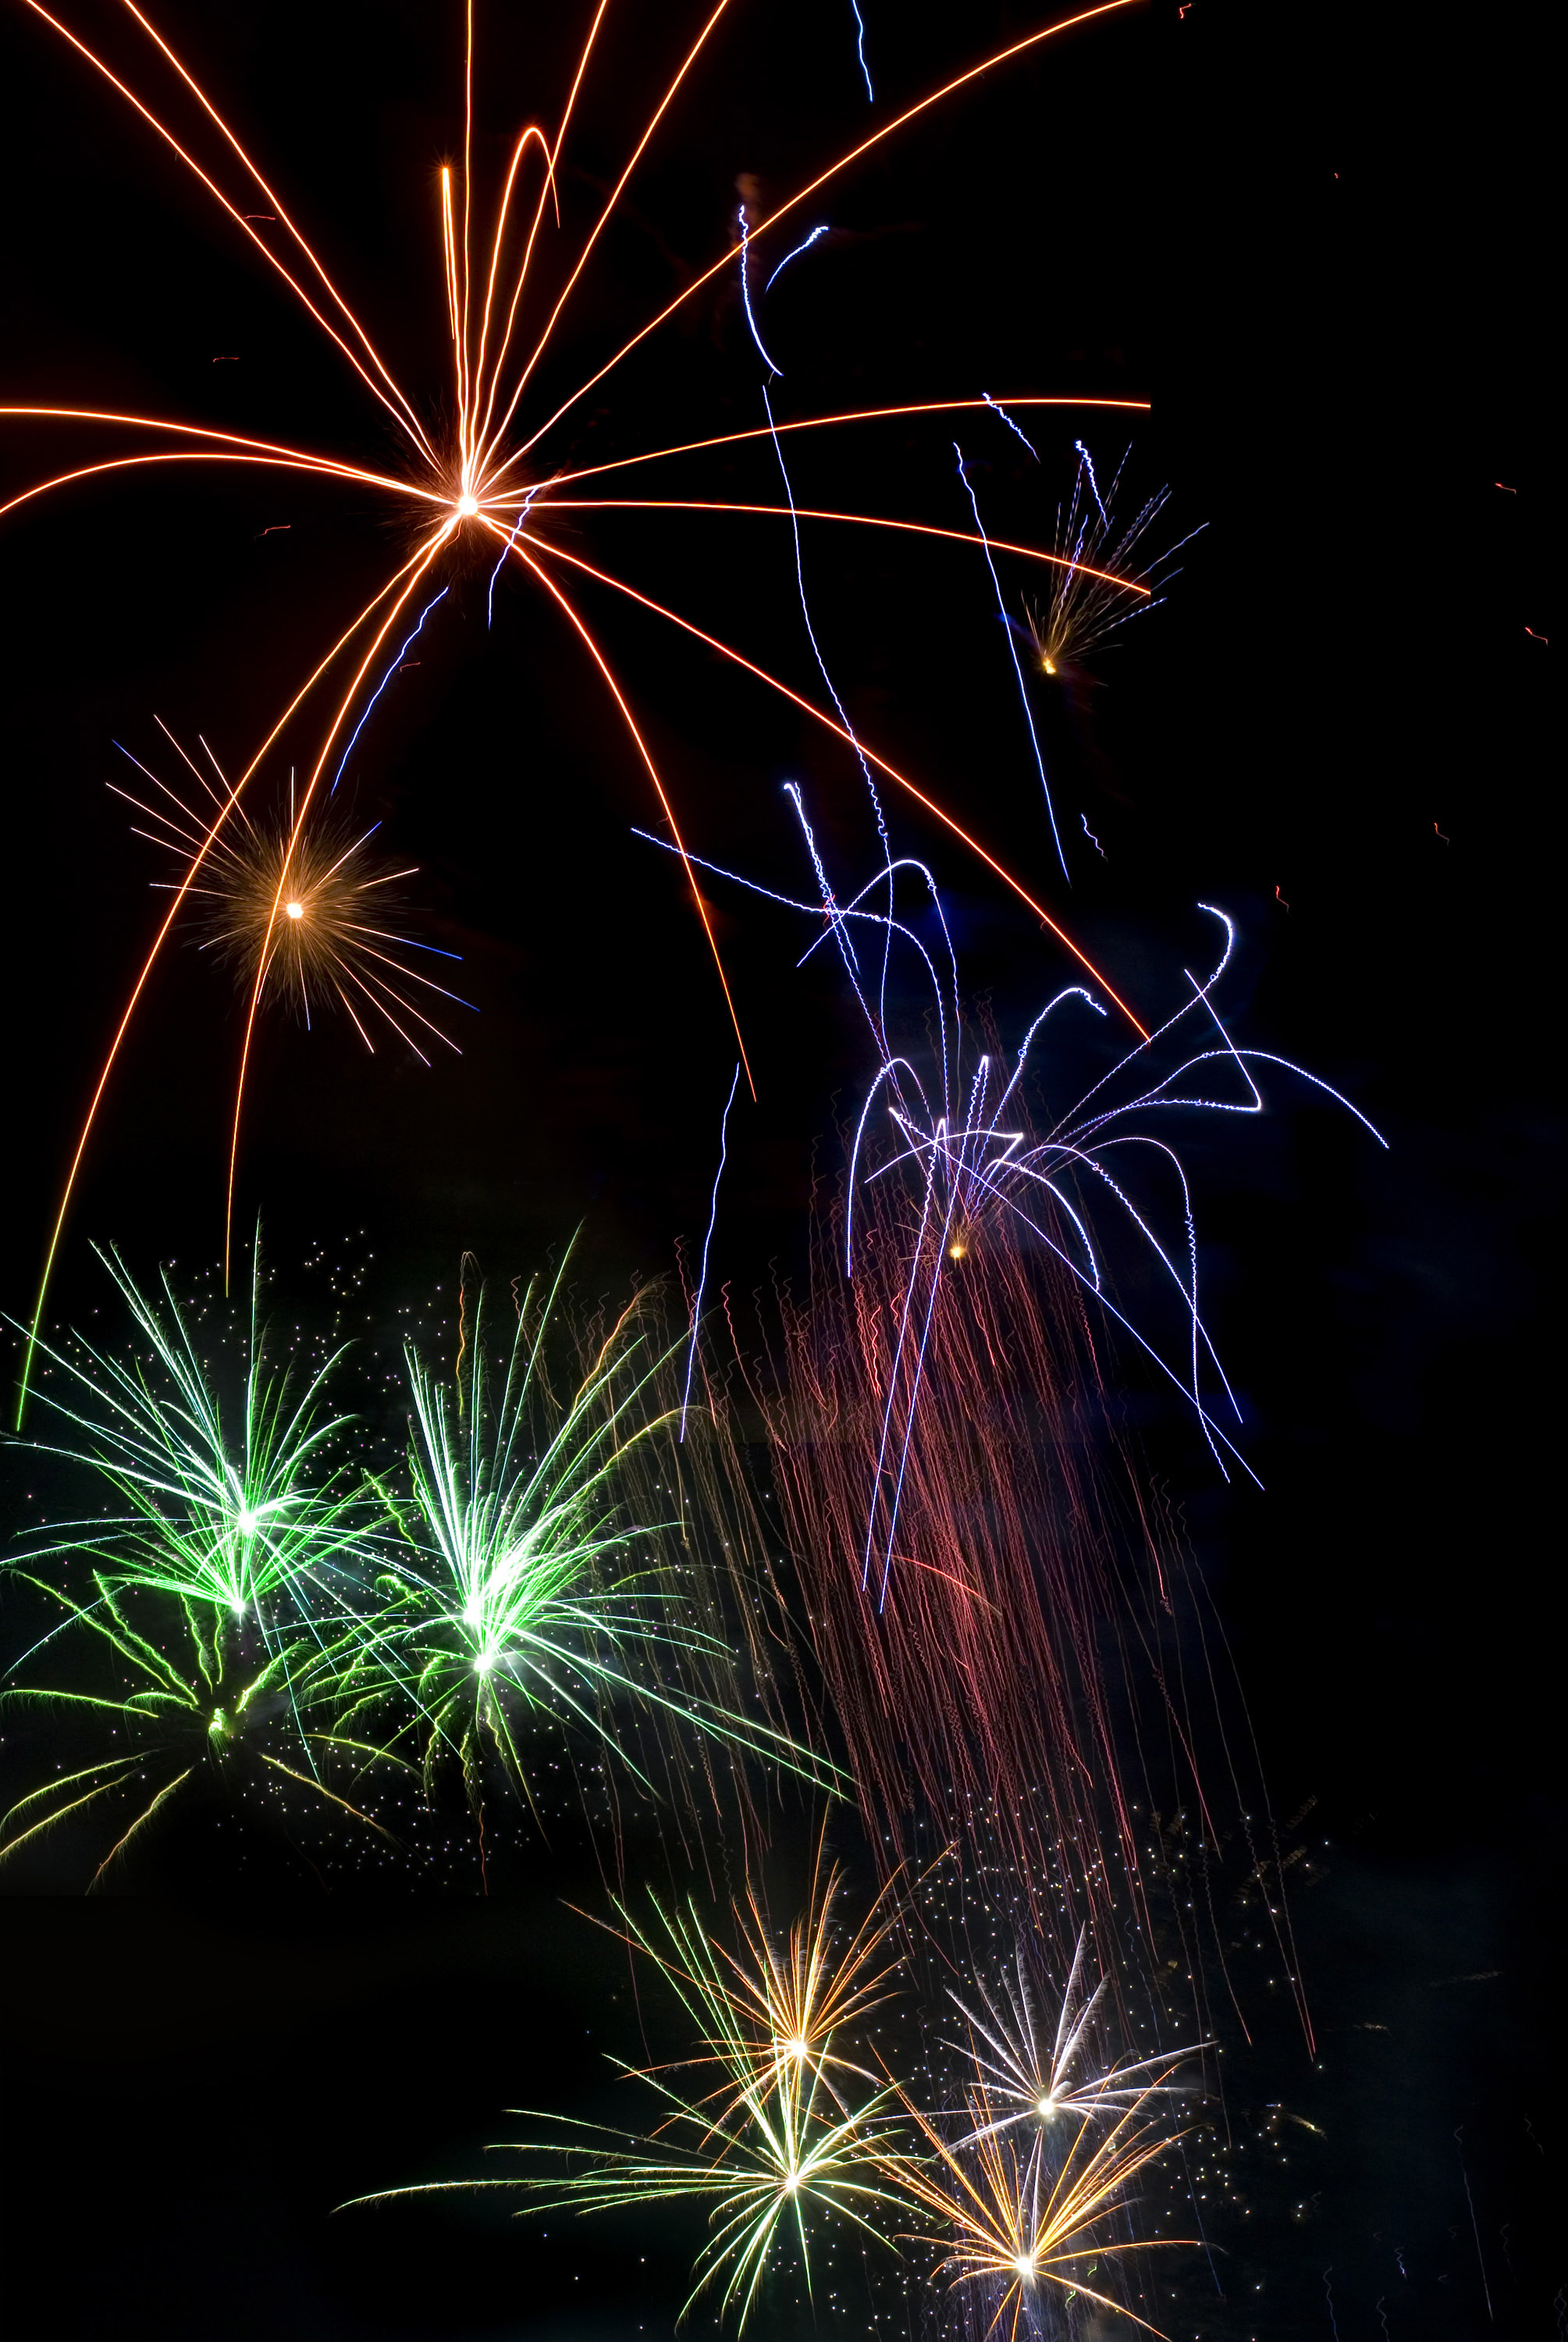 lights trails from rockets at a spectacular pyrotechnic display to welcome in the new year